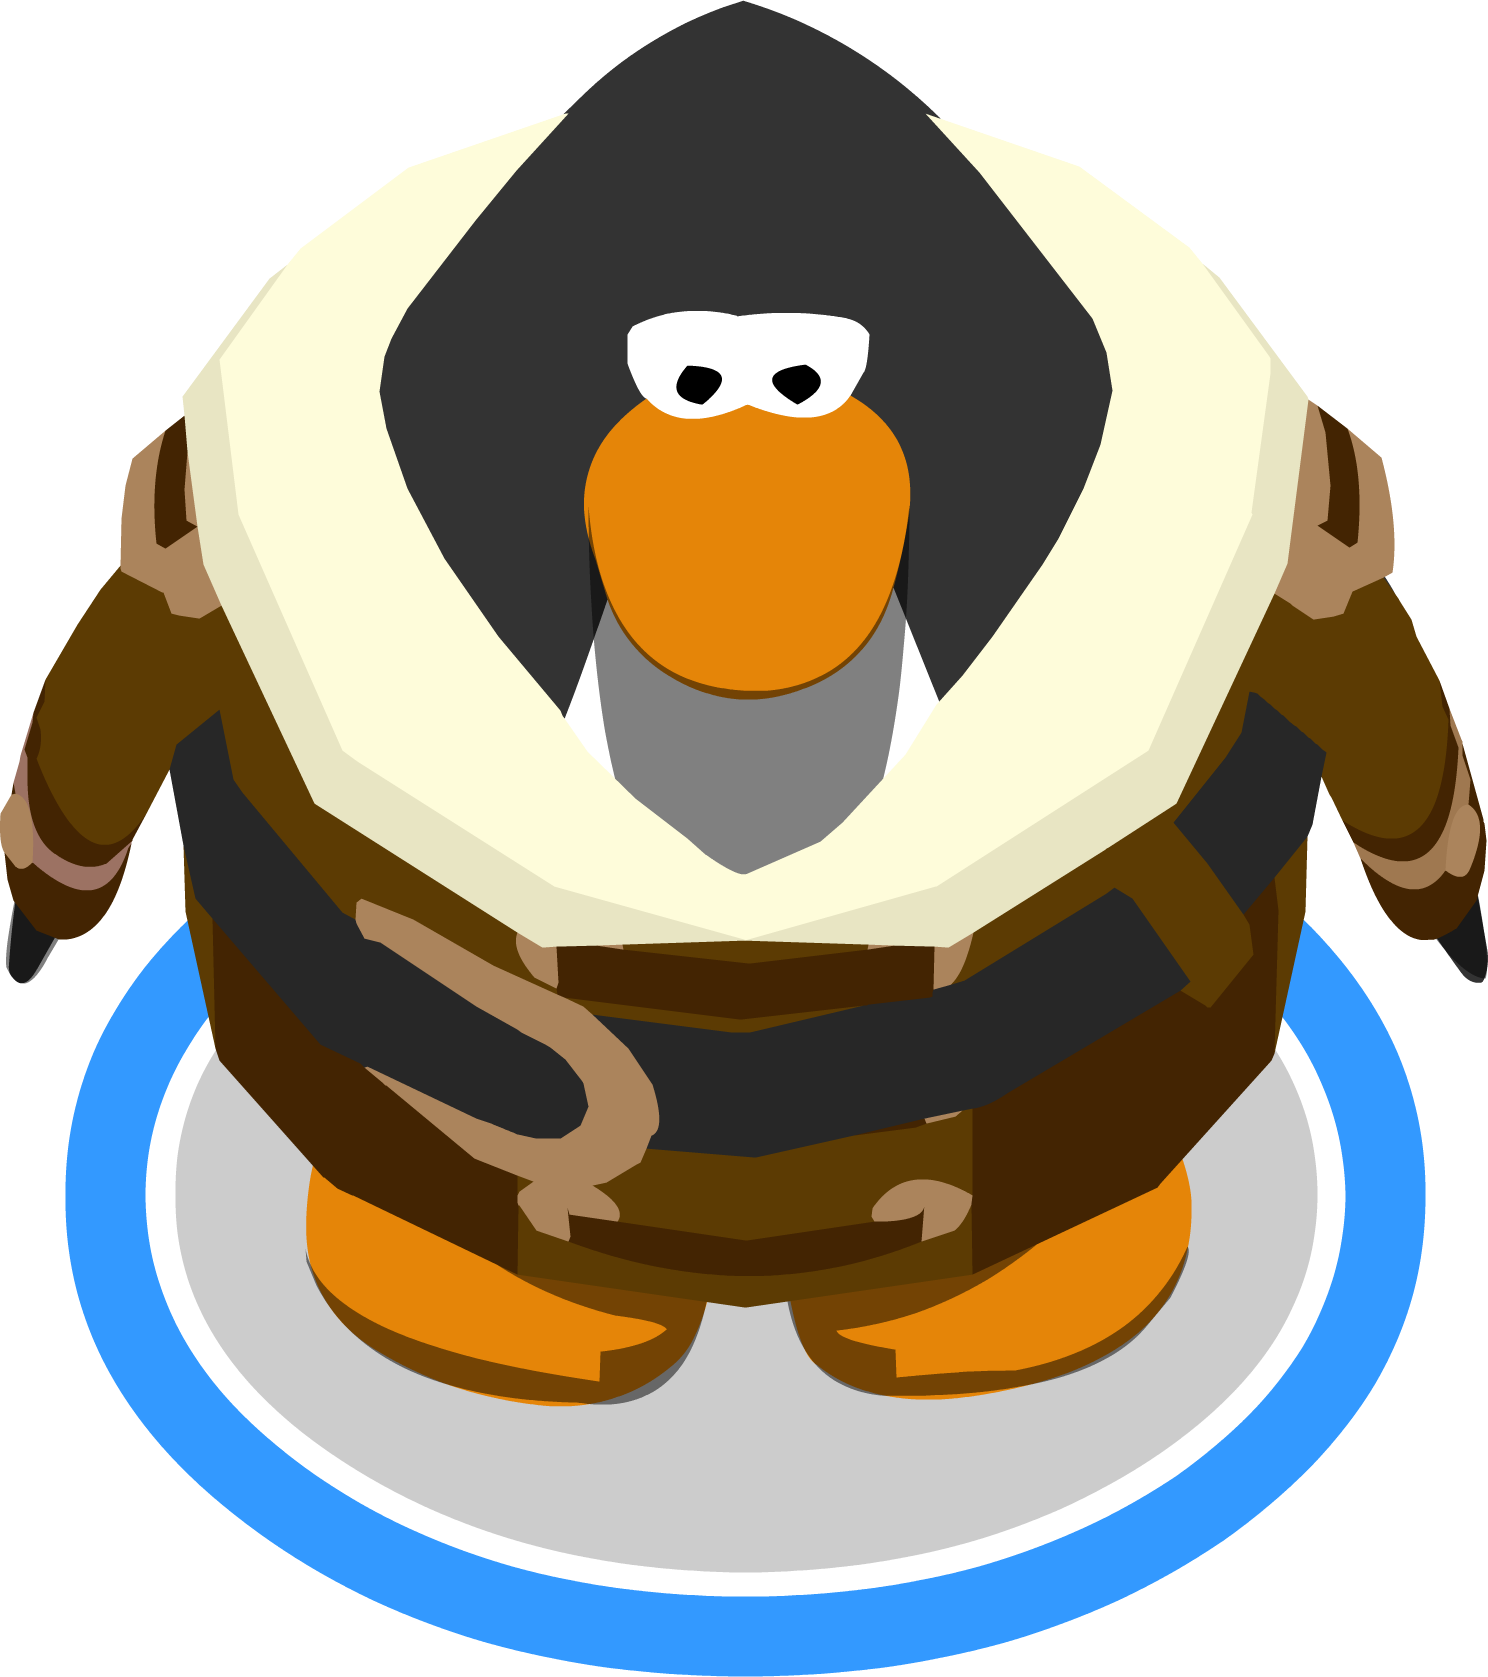 Image s greatcoat in. Captain clipart penguin jpg royalty free